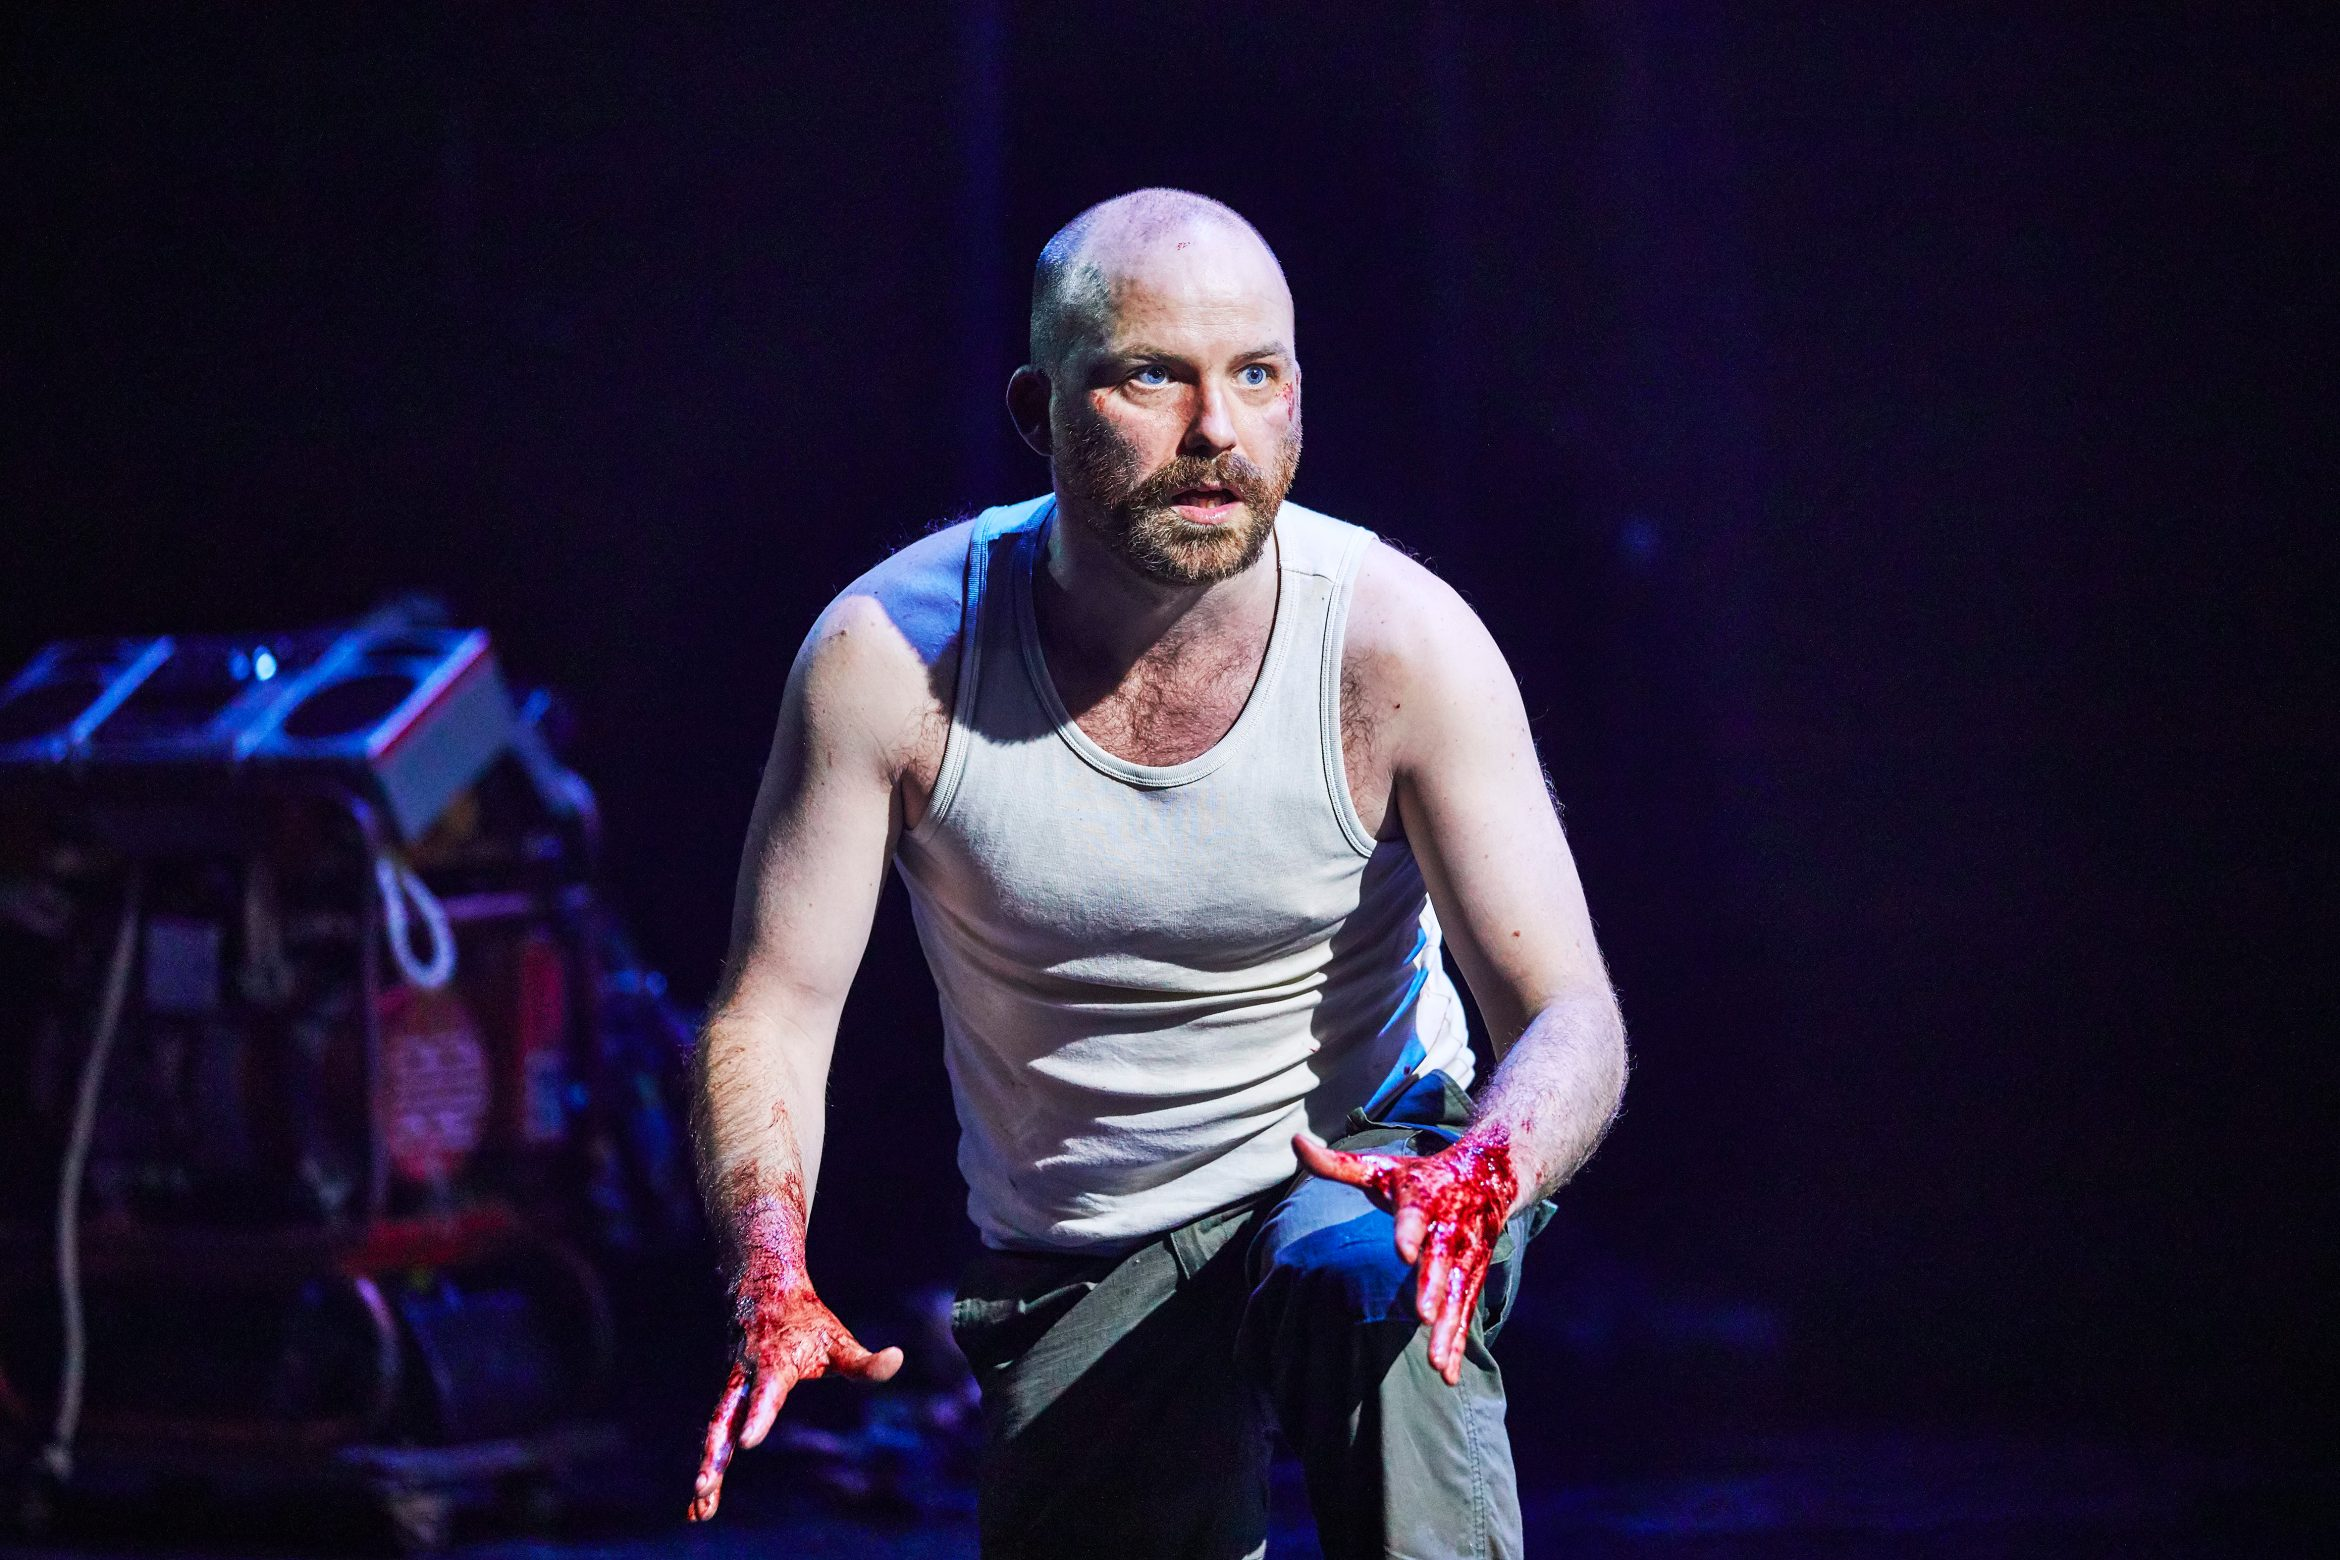 Rory Kinnear as Macbeth in Macbeth at the National Theatre (c) Brinkhoff Mögenburg 1002-0642.JPG